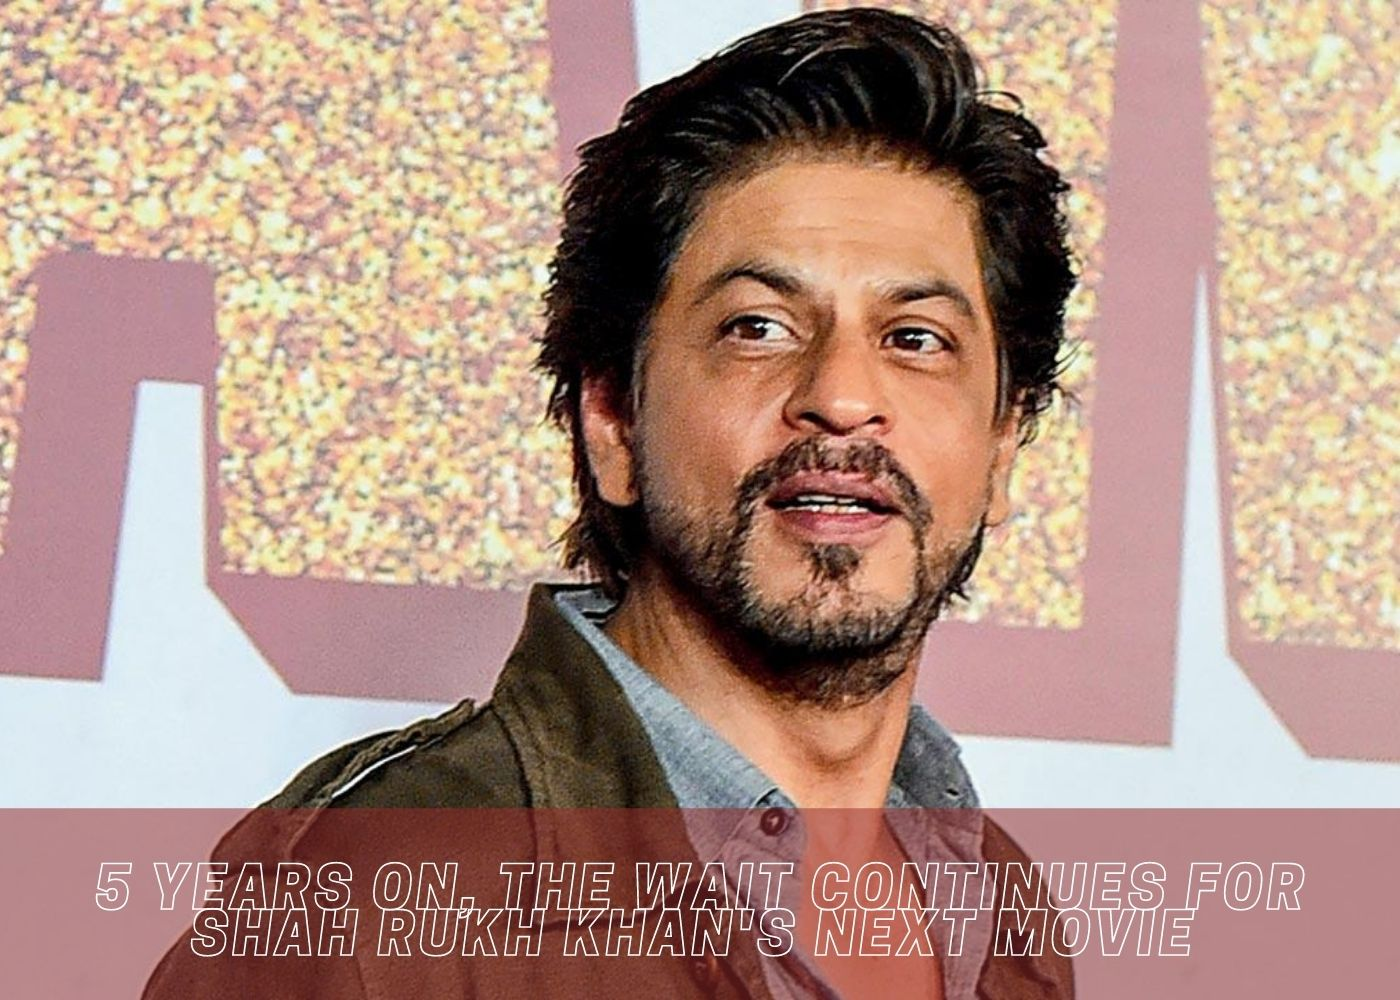 5 Years On, the Wait Continues for Shah Rukh Khan's Next Movie